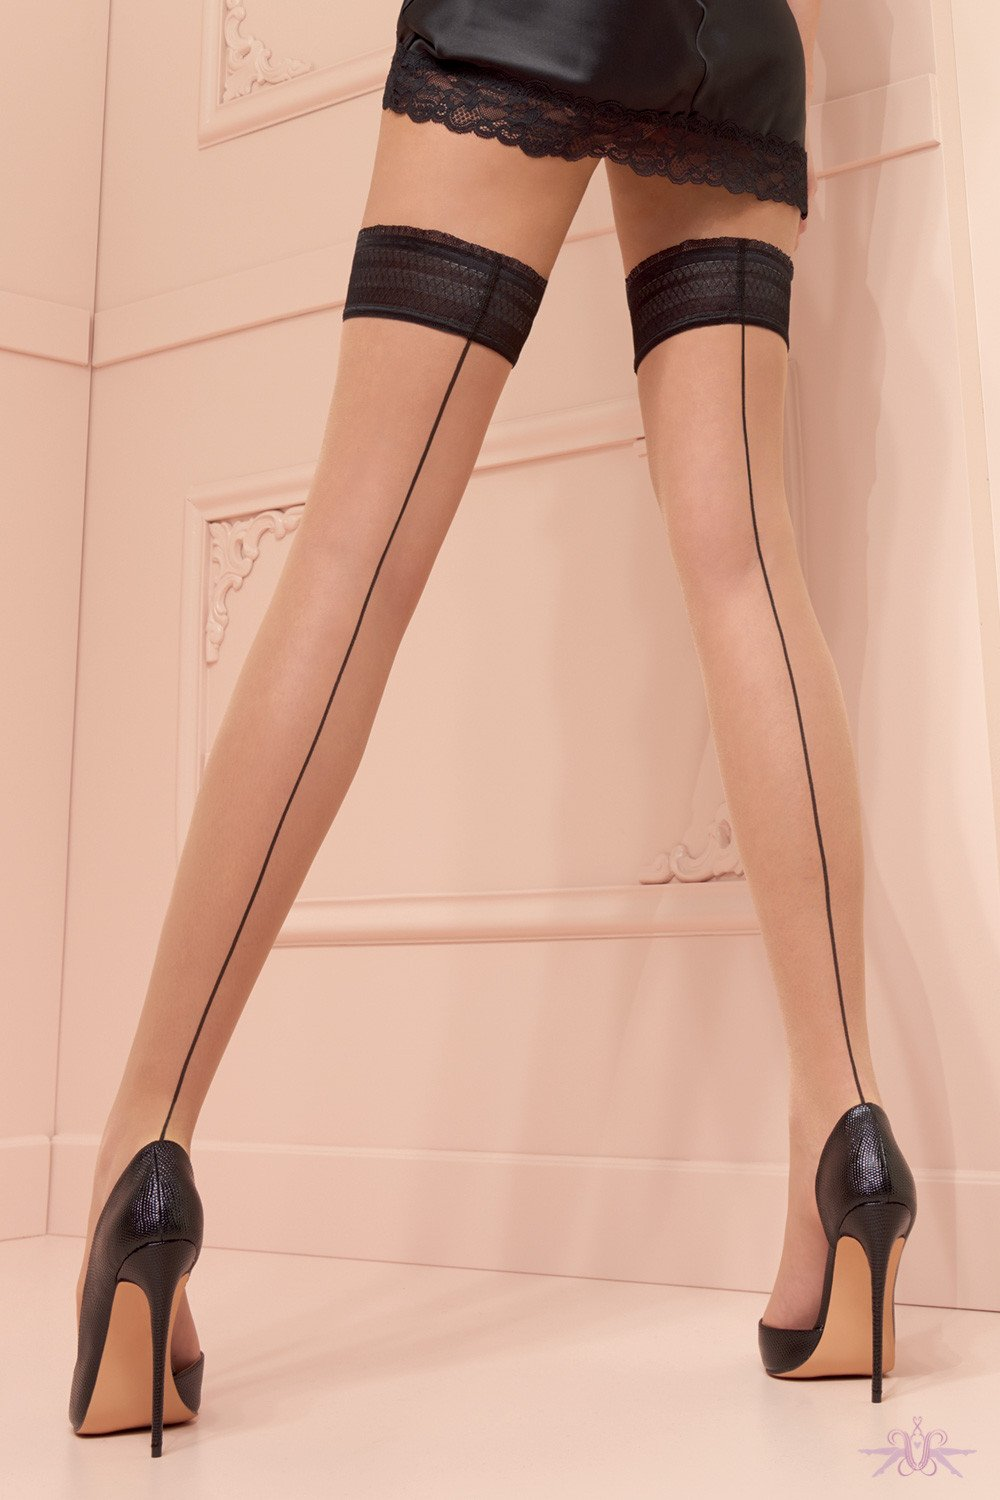 Trasparenze Jessy Hold Ups - The Hosiery Box